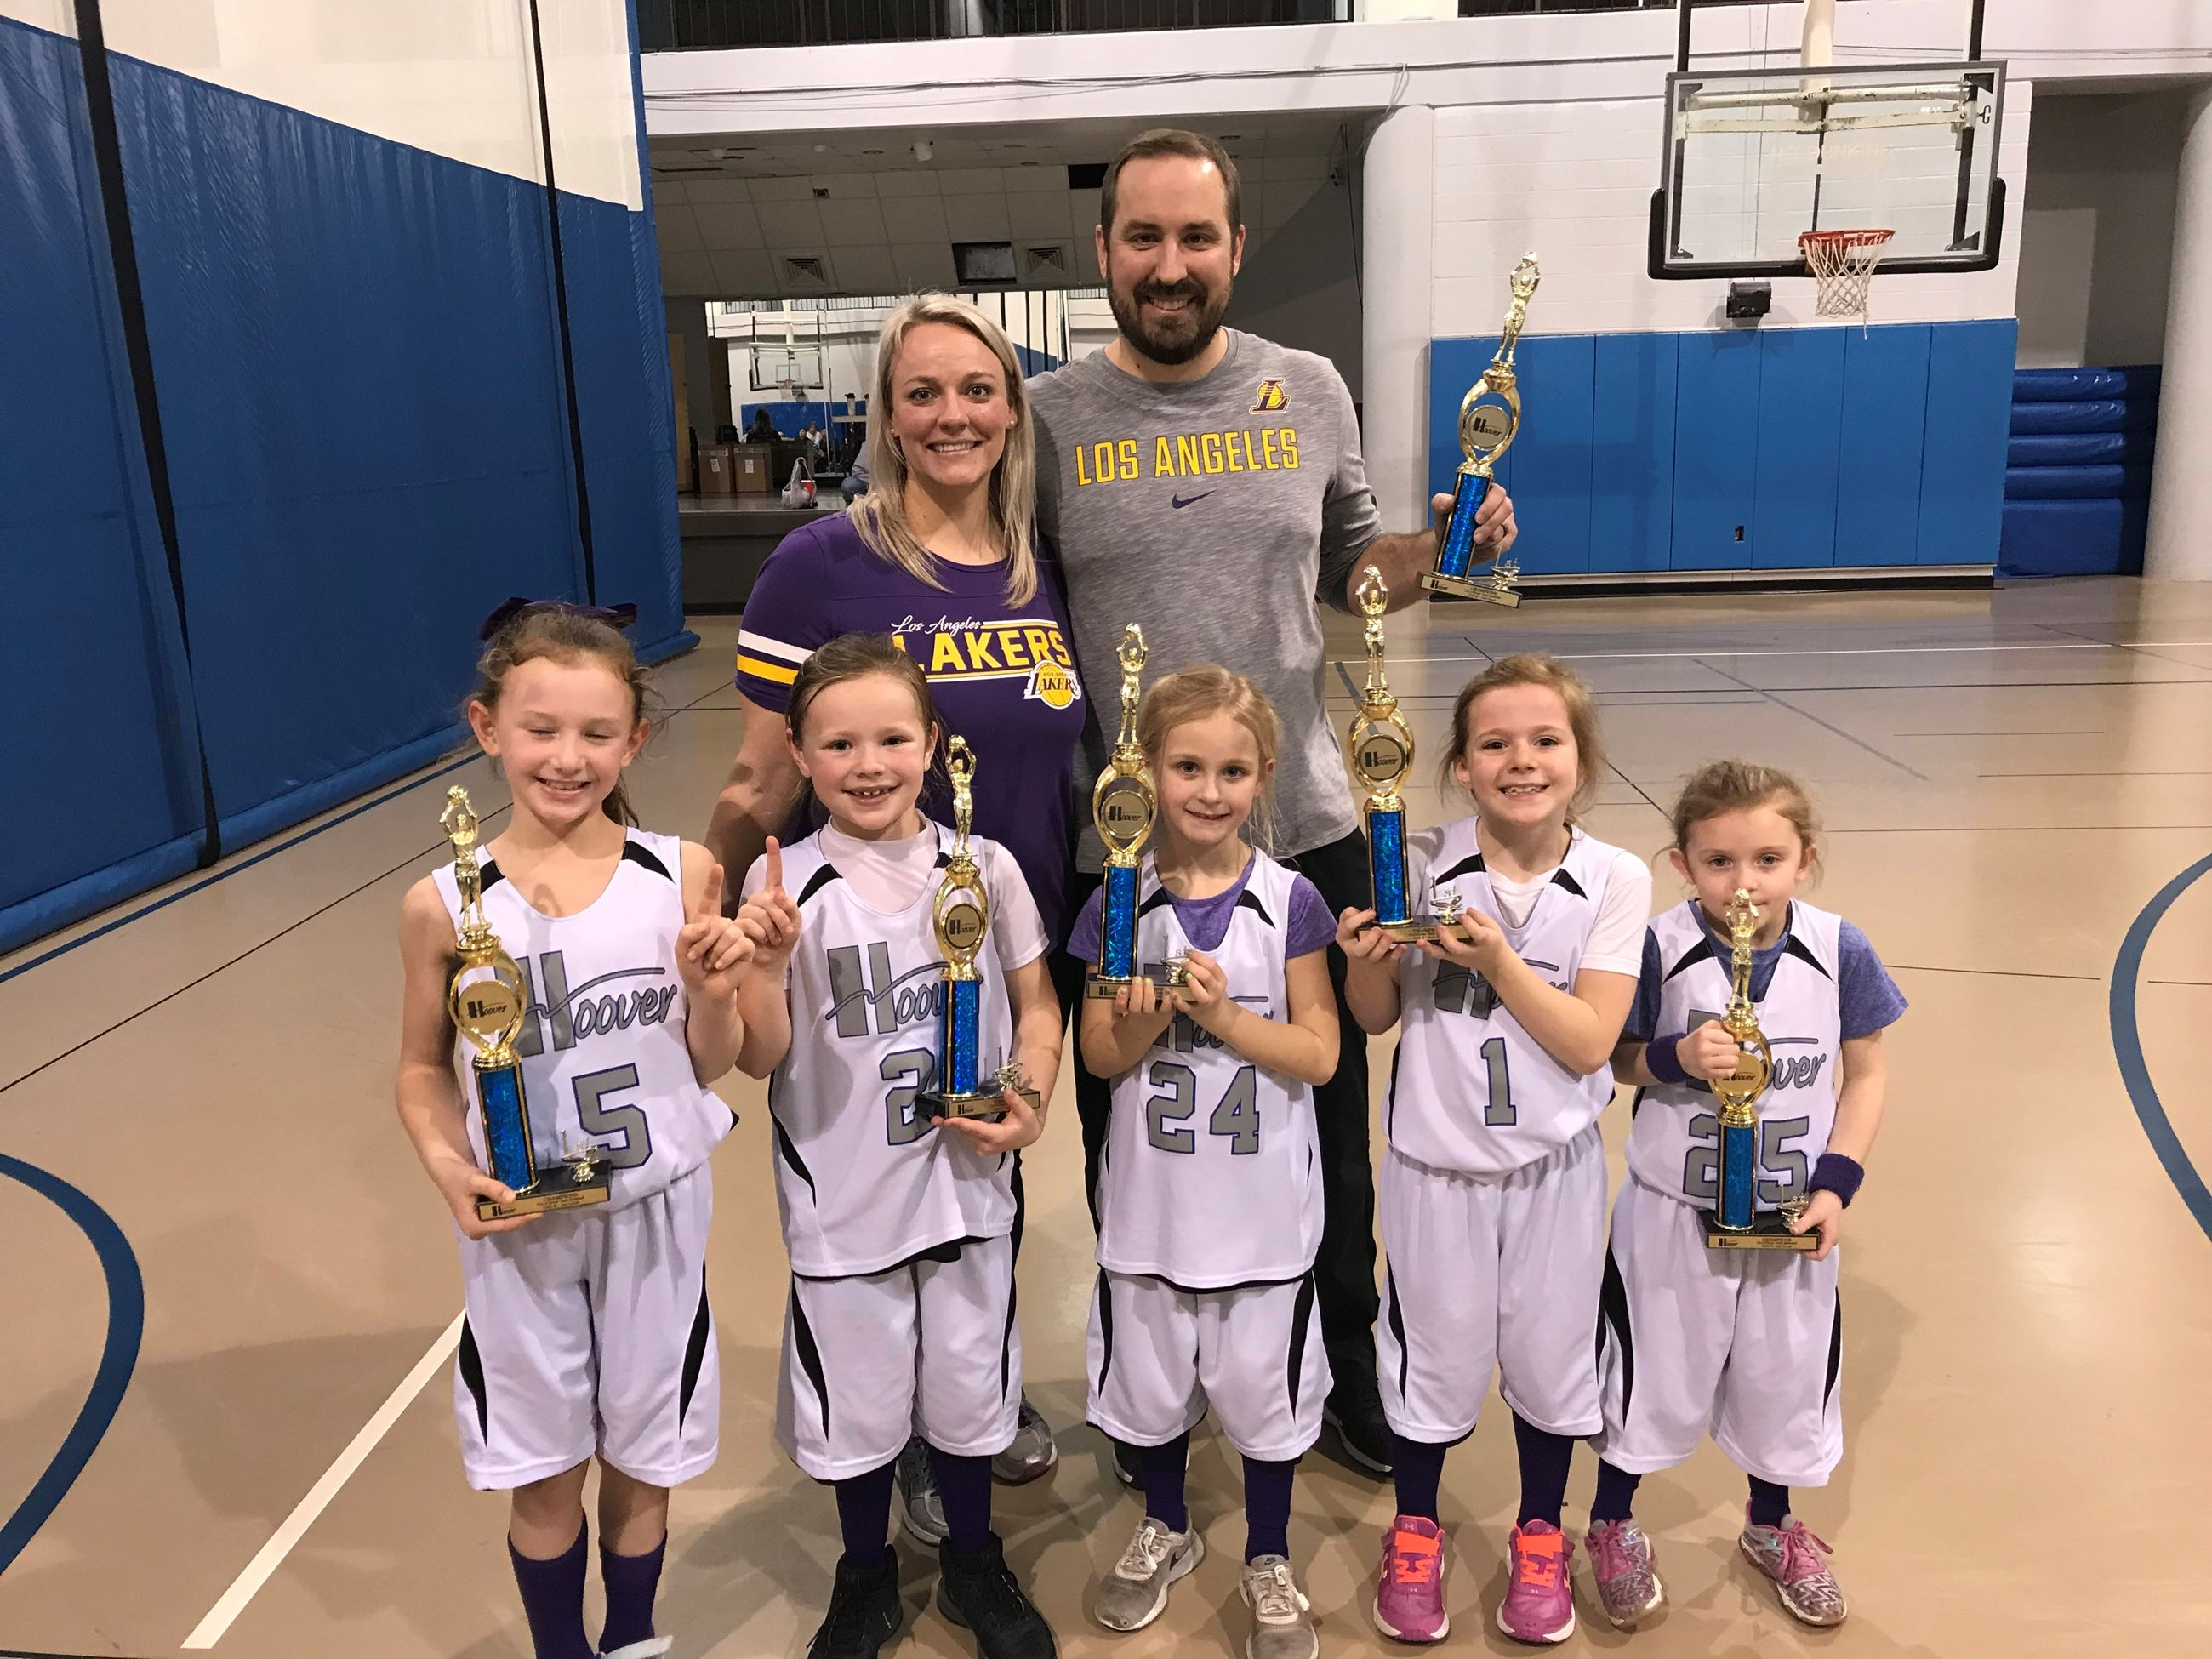 Kindergarten thru 2nd Grade Champions Lady Lakers Coach Wilson